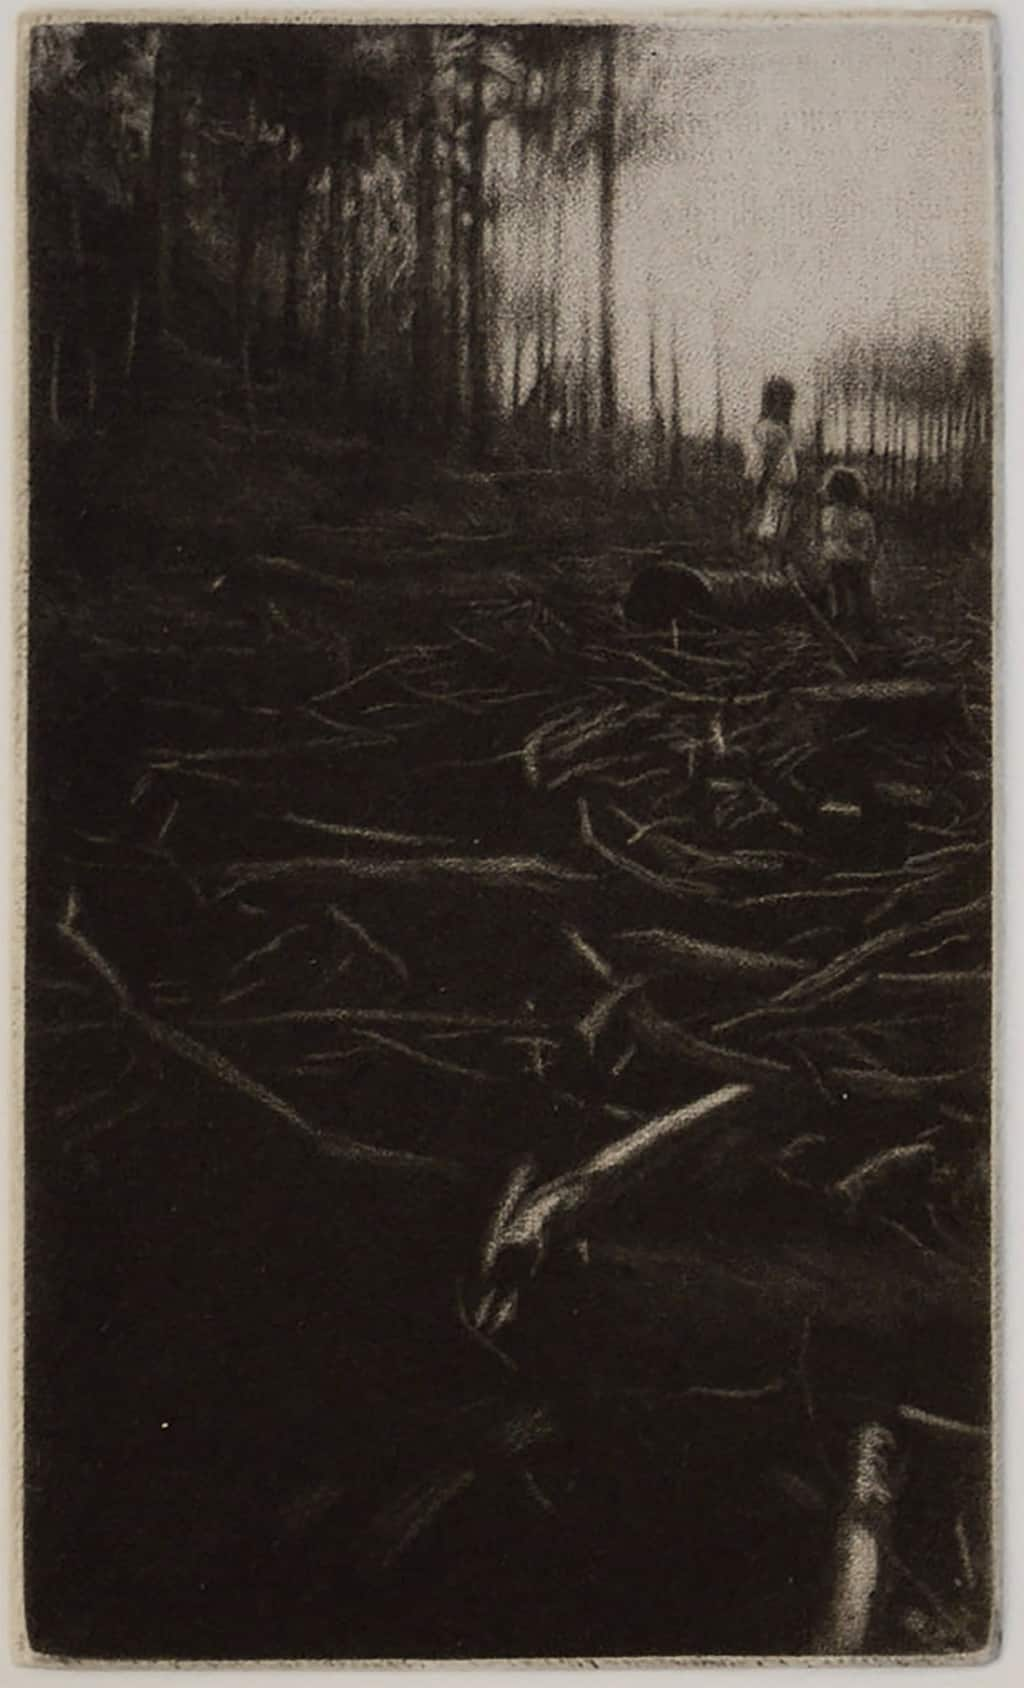 """""""The Clearing"""" - picture of two children standing in the clearing in the forest. Original print mezzotint by painter-printmaker Marina Kim"""